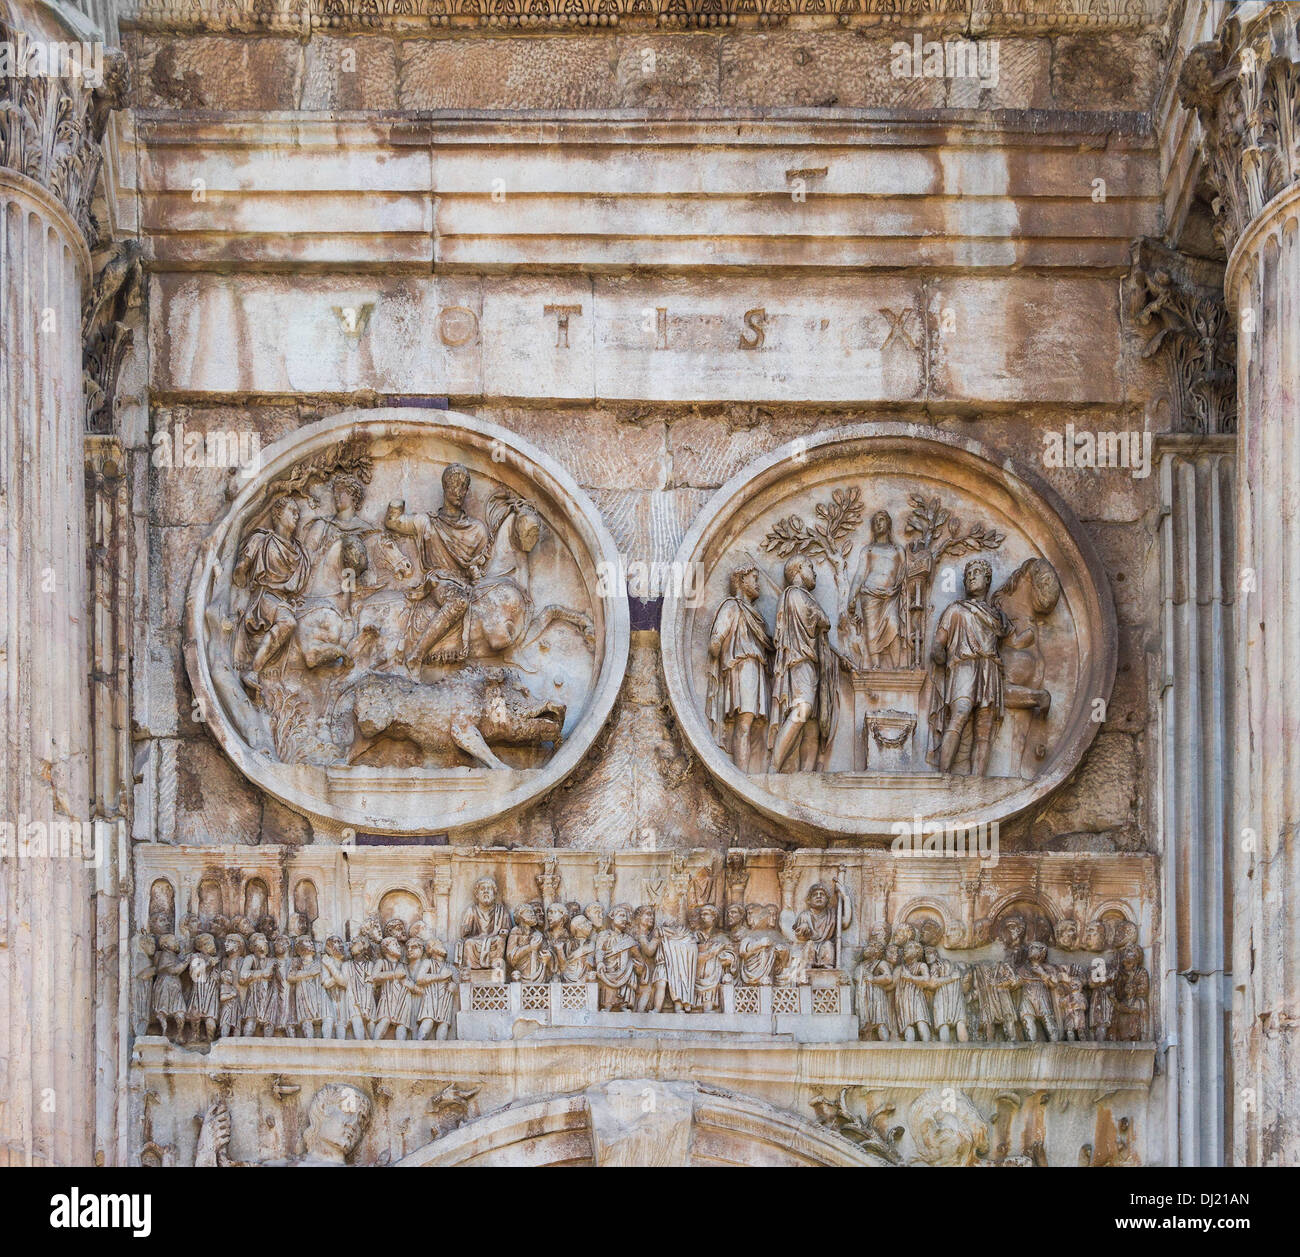 Reliefs of the Arch of Constantine, Rome, Italy. - Stock Image